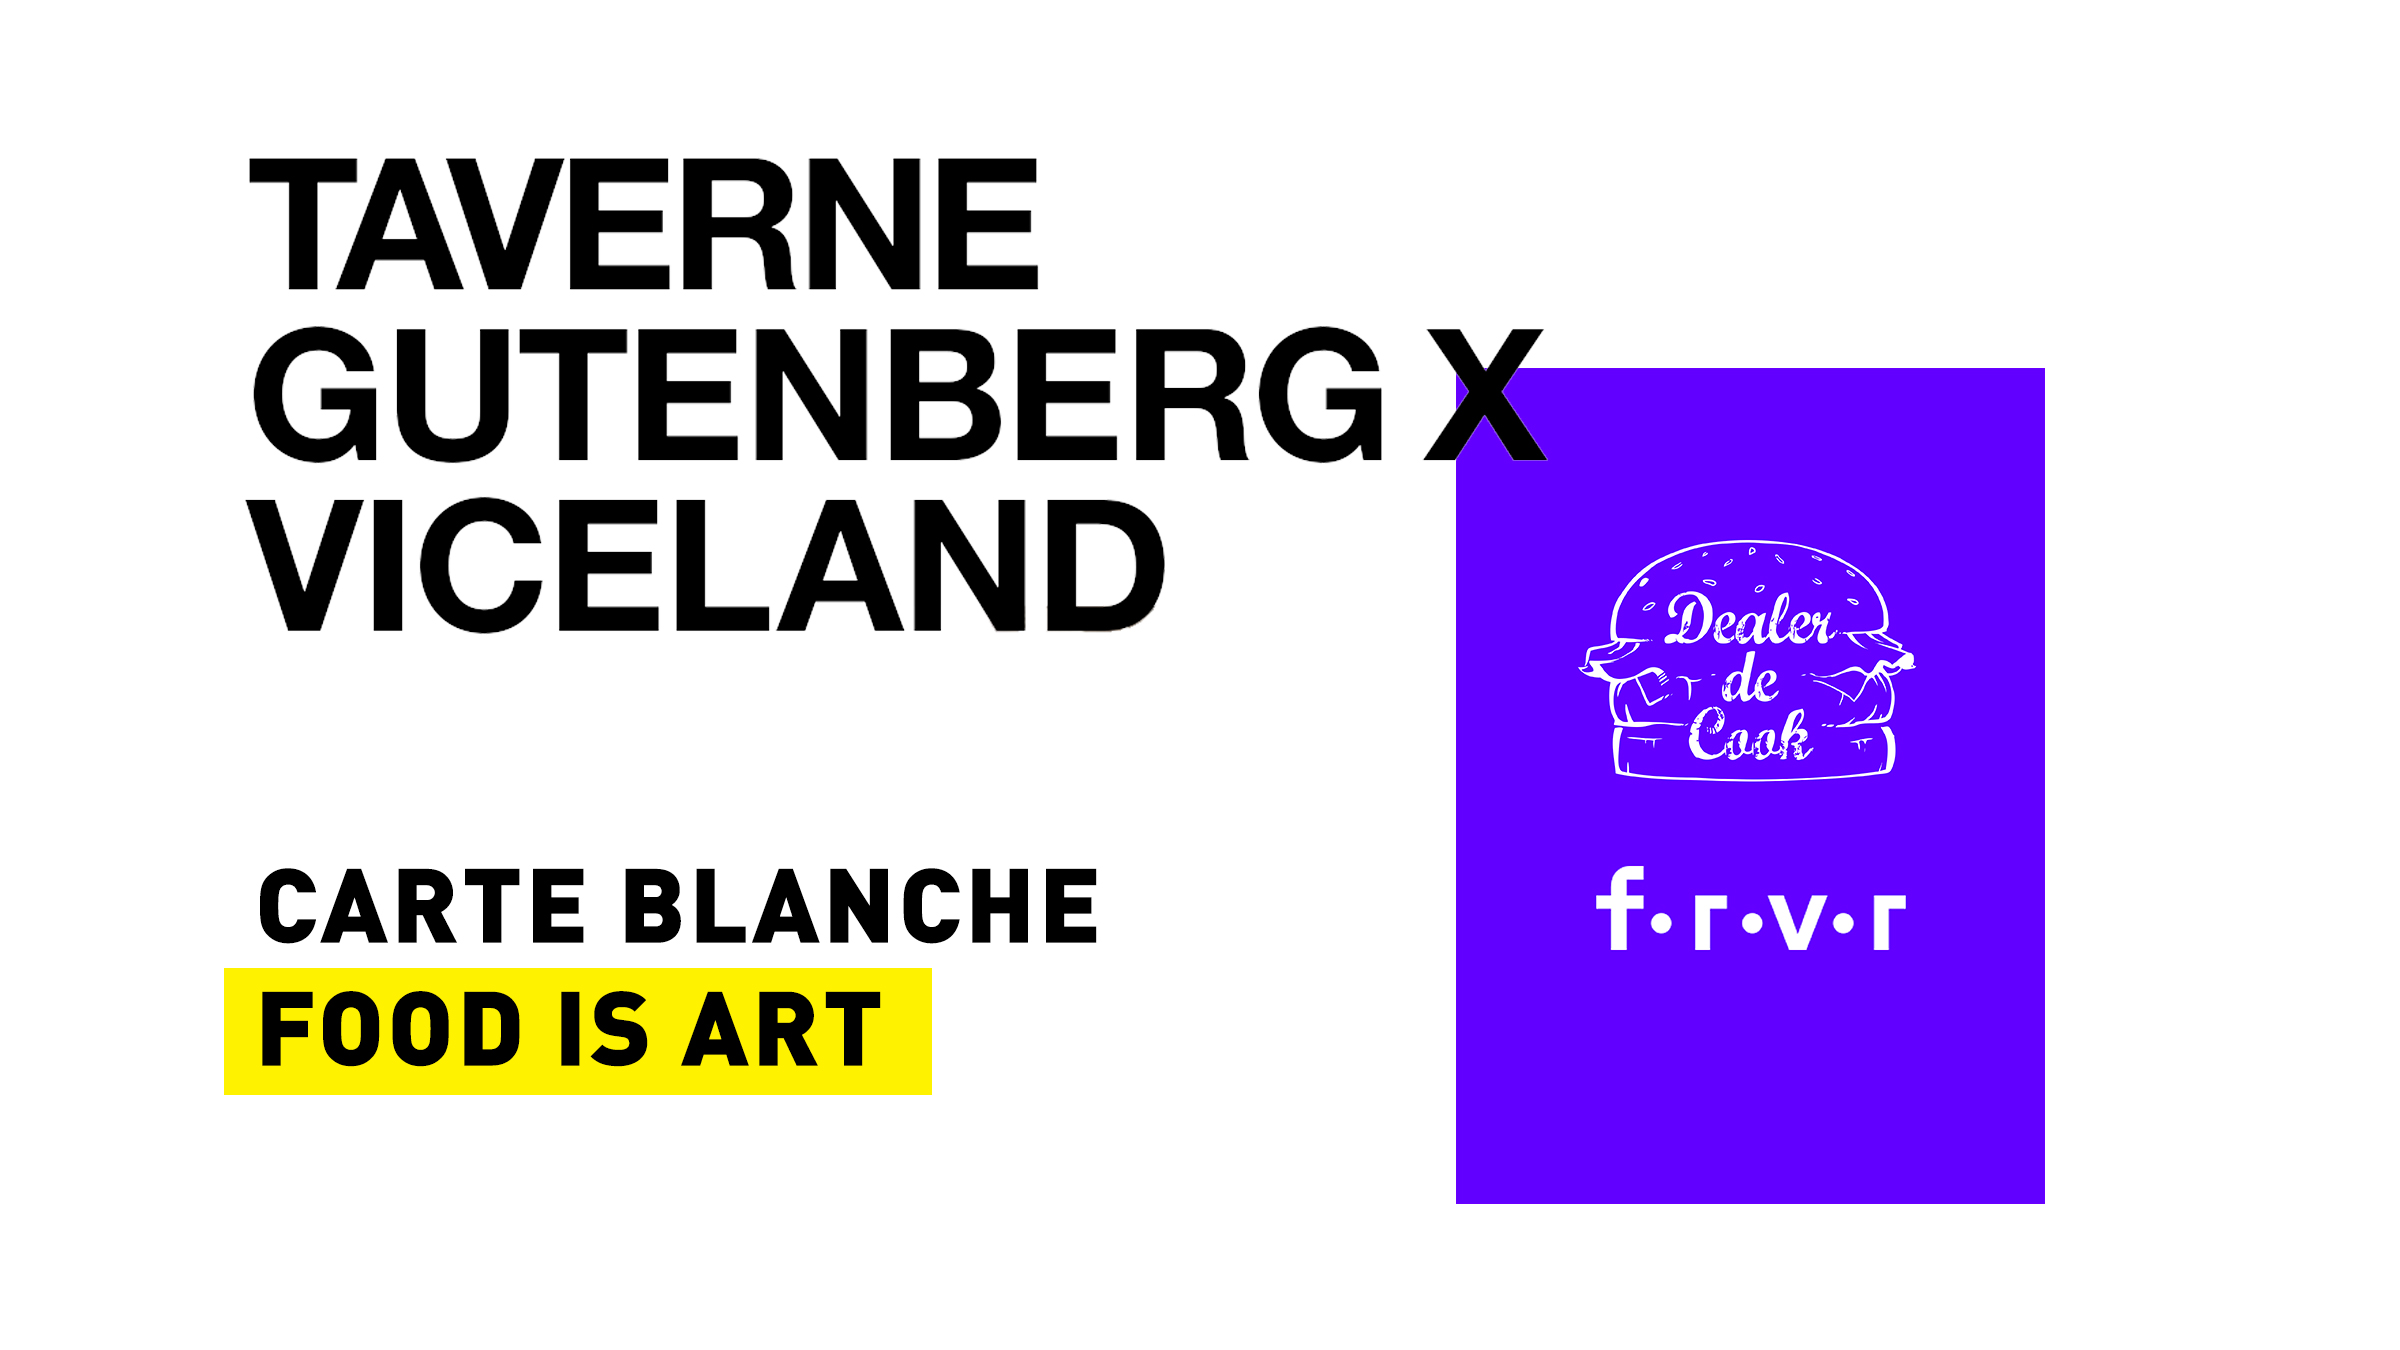 Carte blanche food is art, Viceland, 08/05